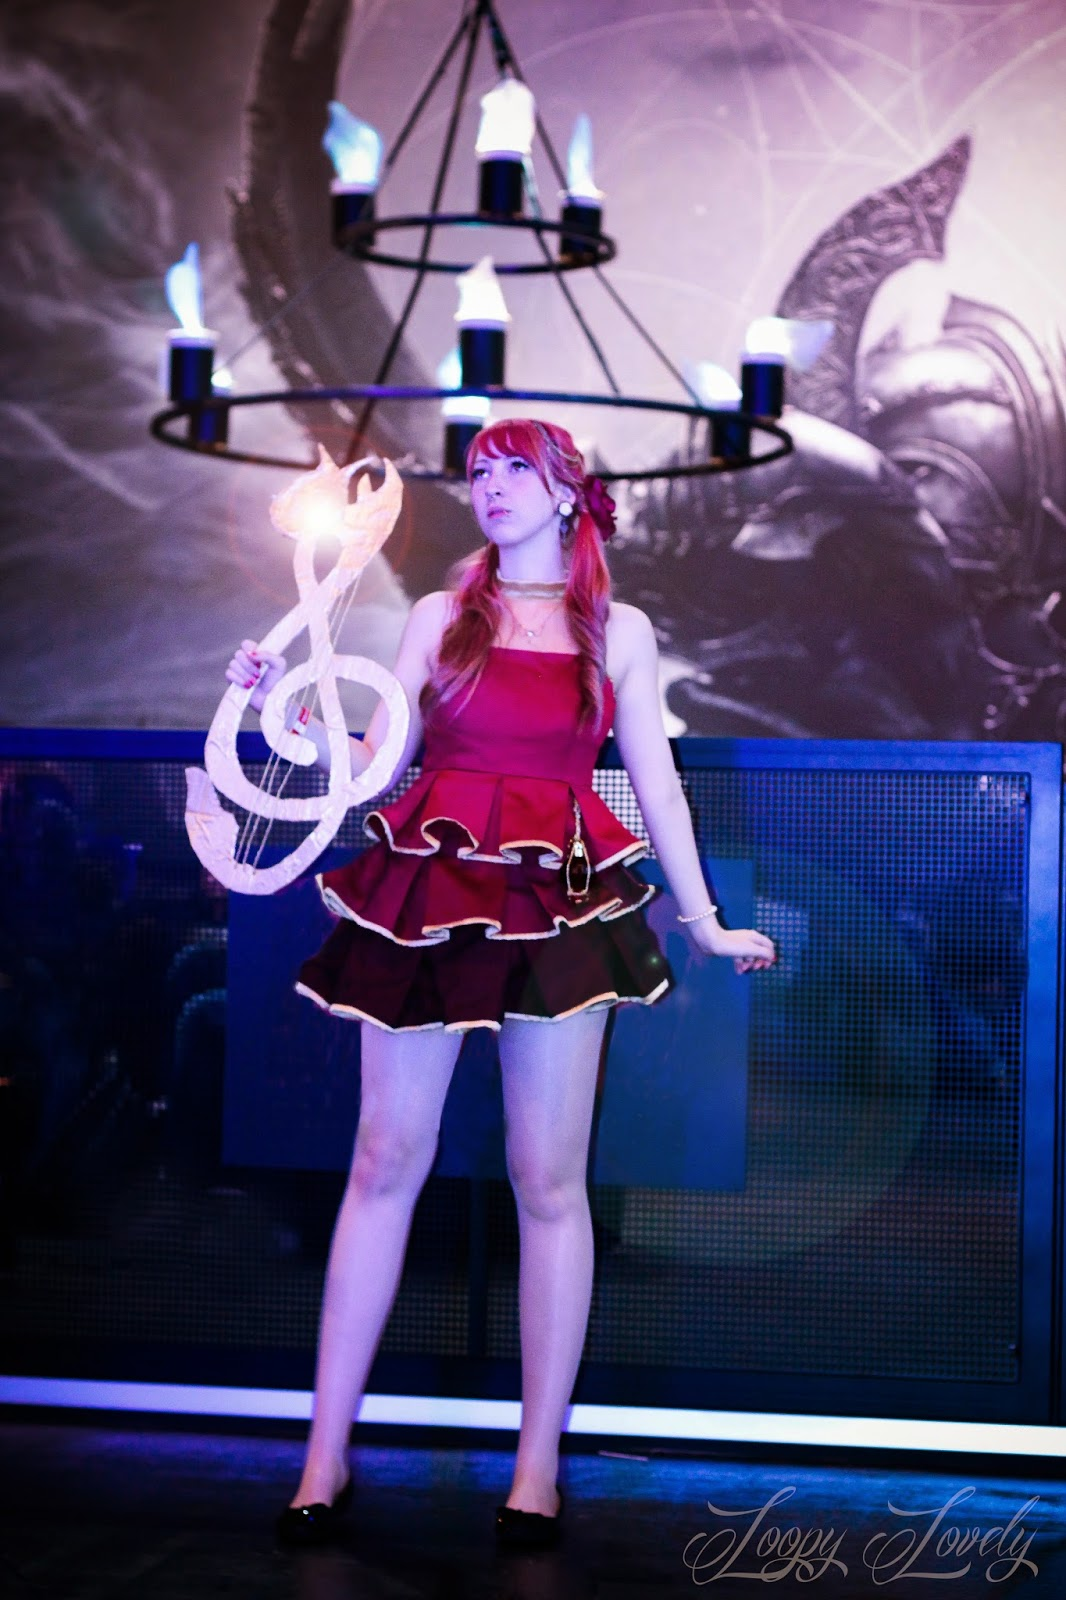 Aion Cosplay loopy lovely: songweaver aion cosplay